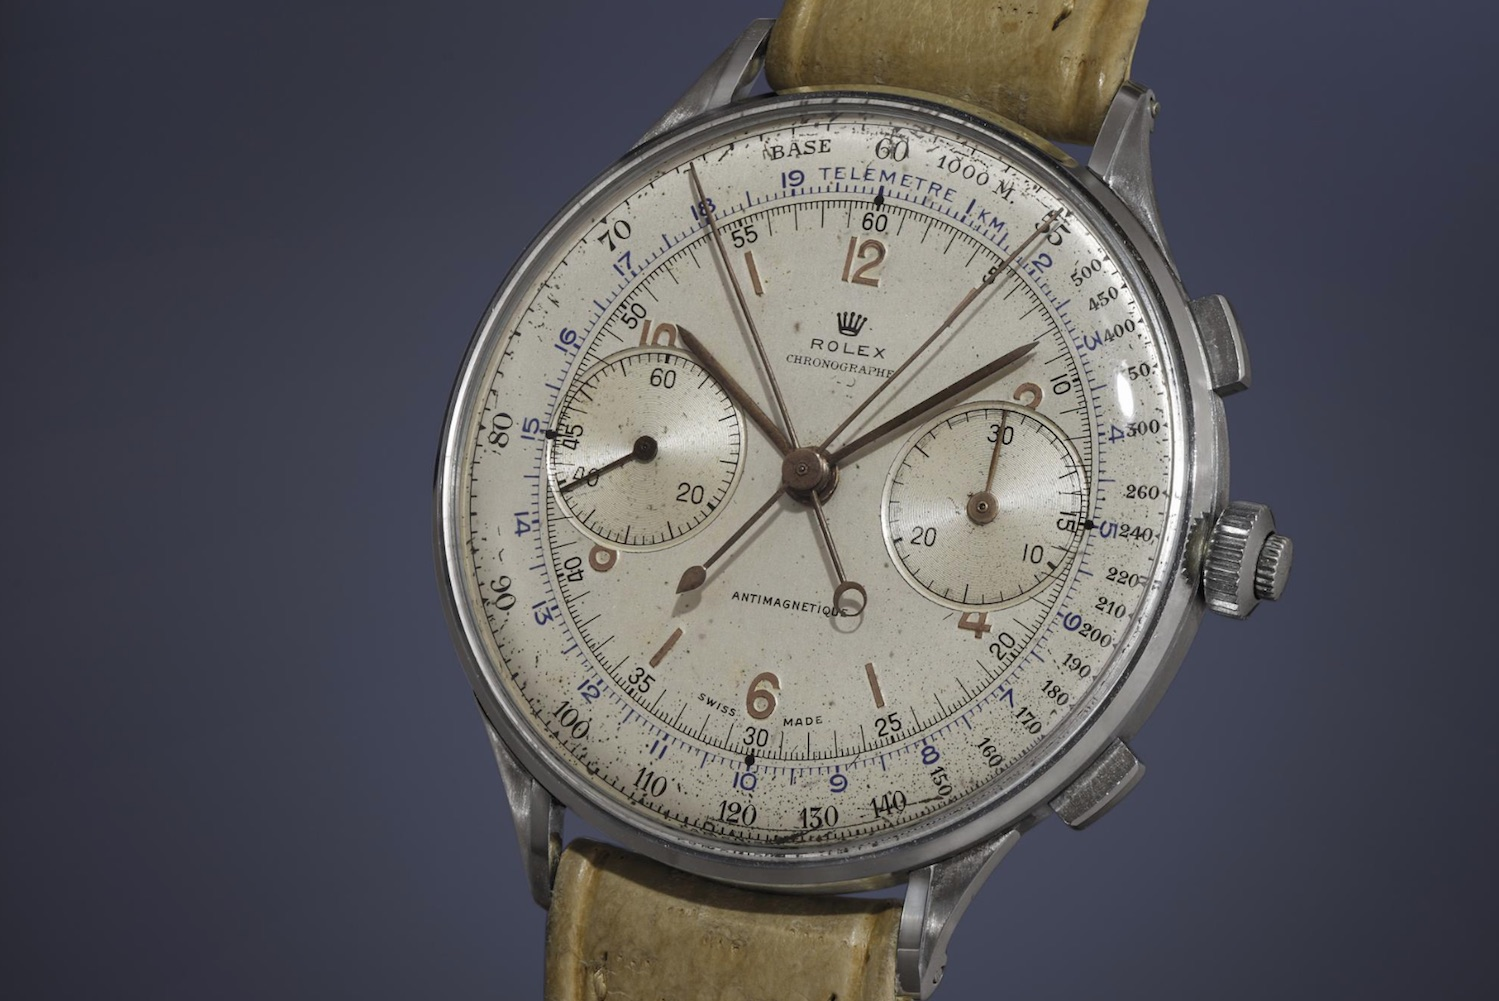 Rolex 4113 Rattrapante Chronograph - credit phillips